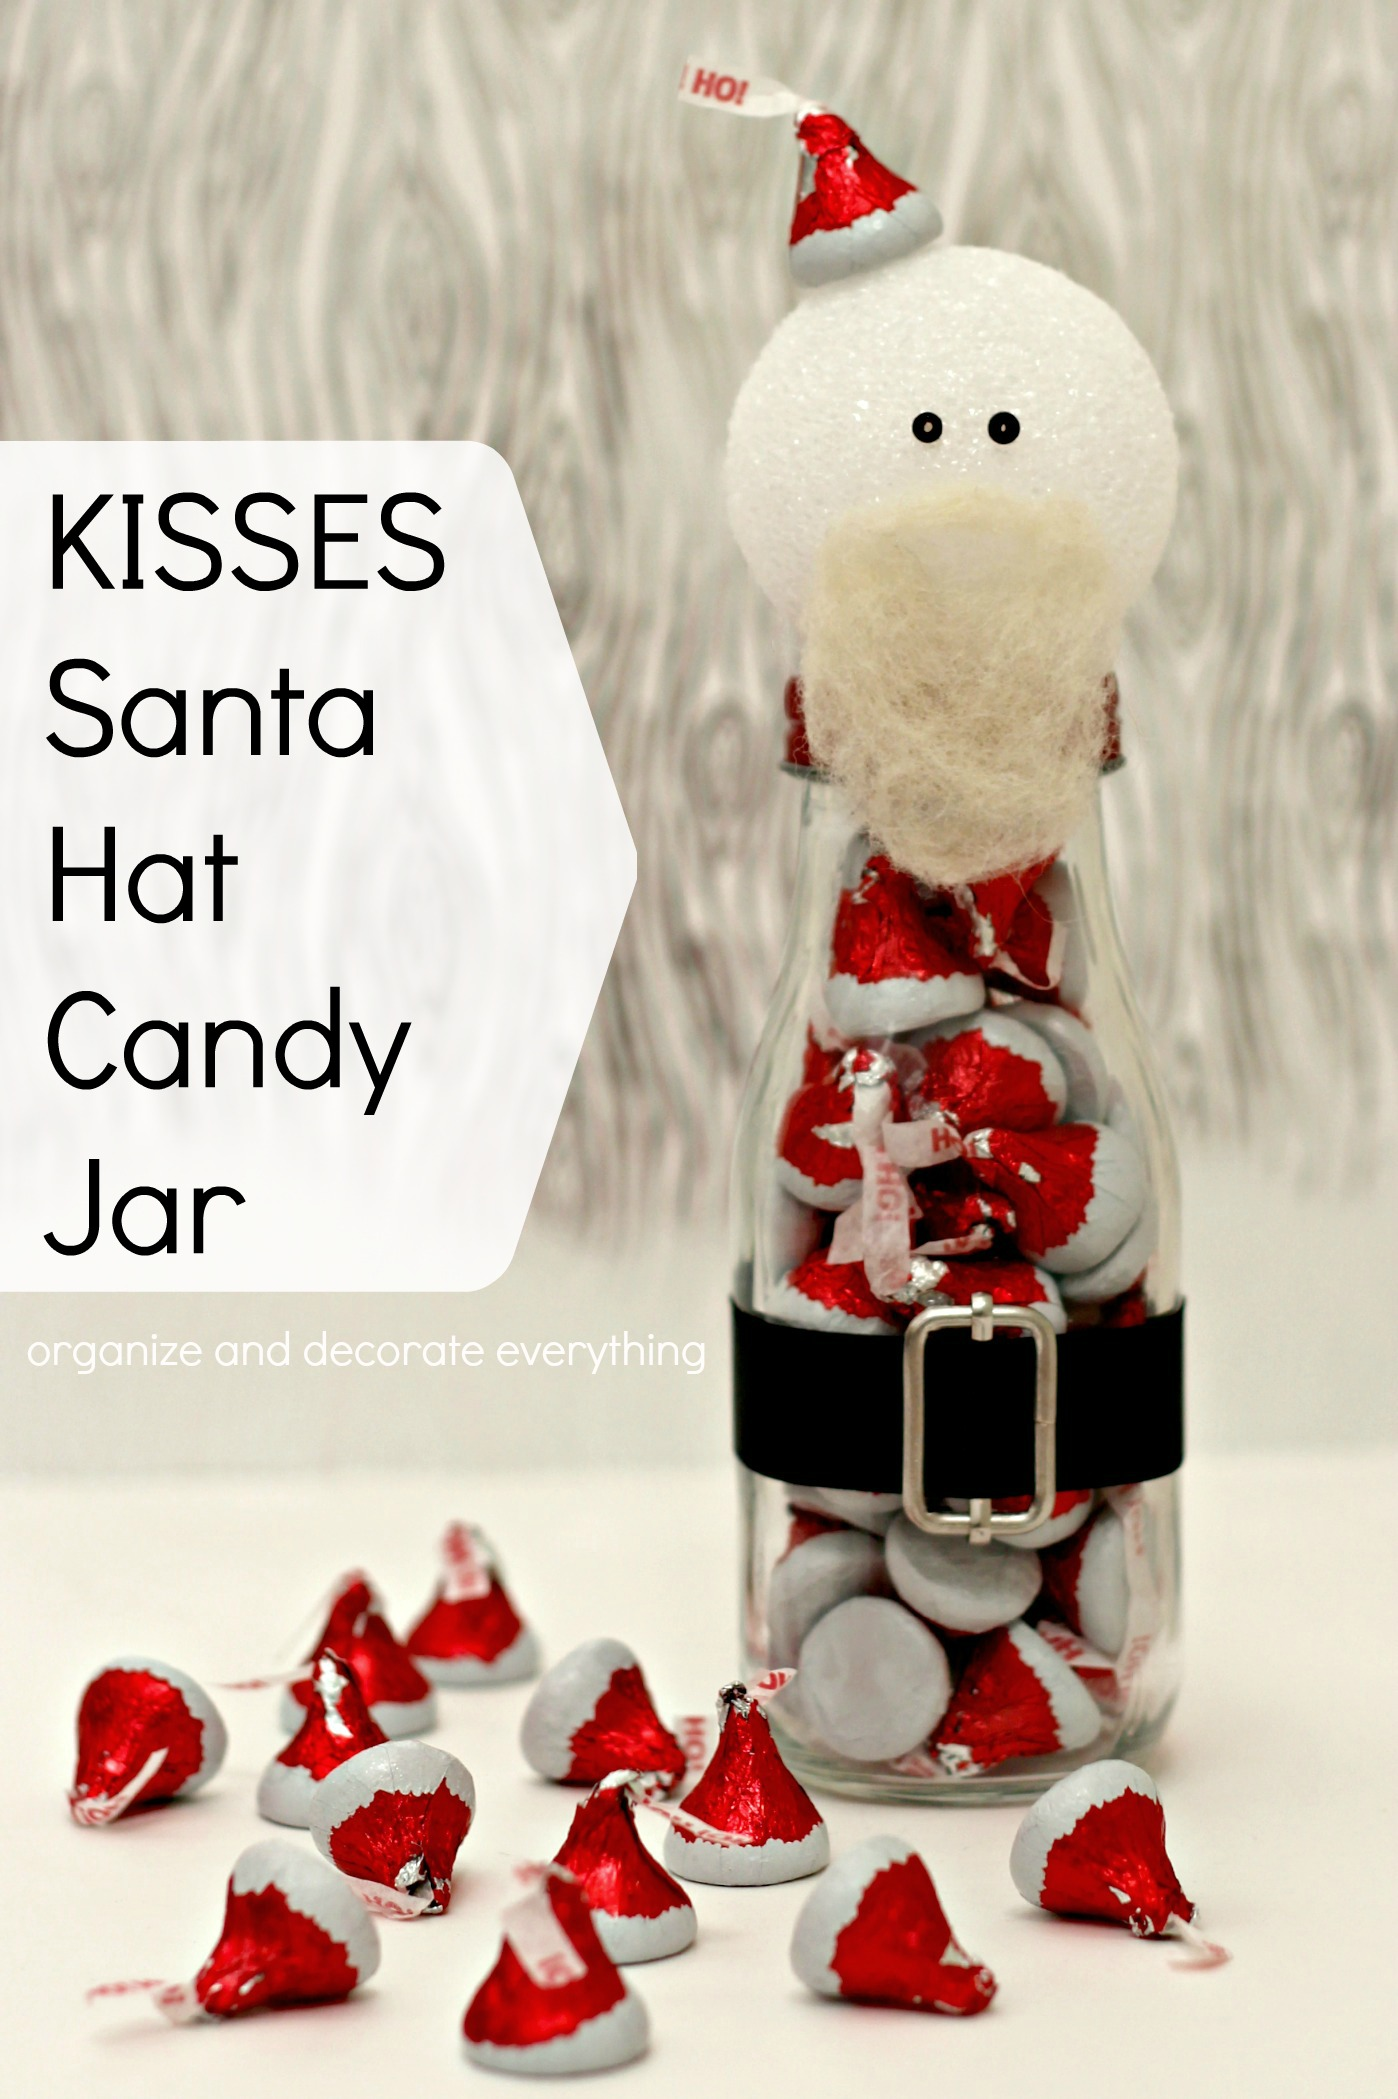 64fa6cb303433 KISSES Santa Hat Candy Jars - Organize and Decorate Everything